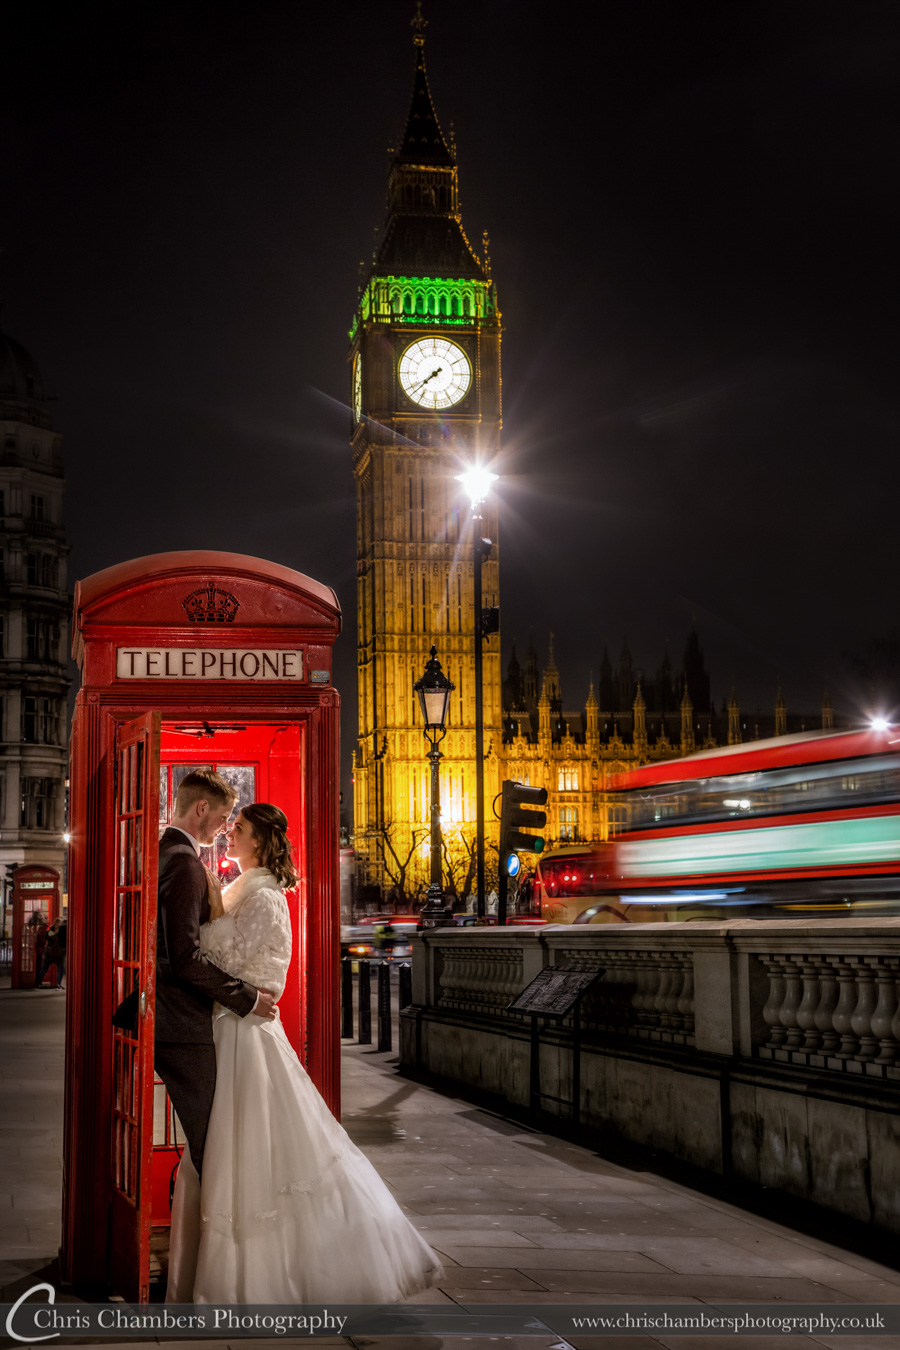 London wedding photography | London wedding photographer | South wedding photography | Tower bridge wedding photography| Chris Chambers wedding photography